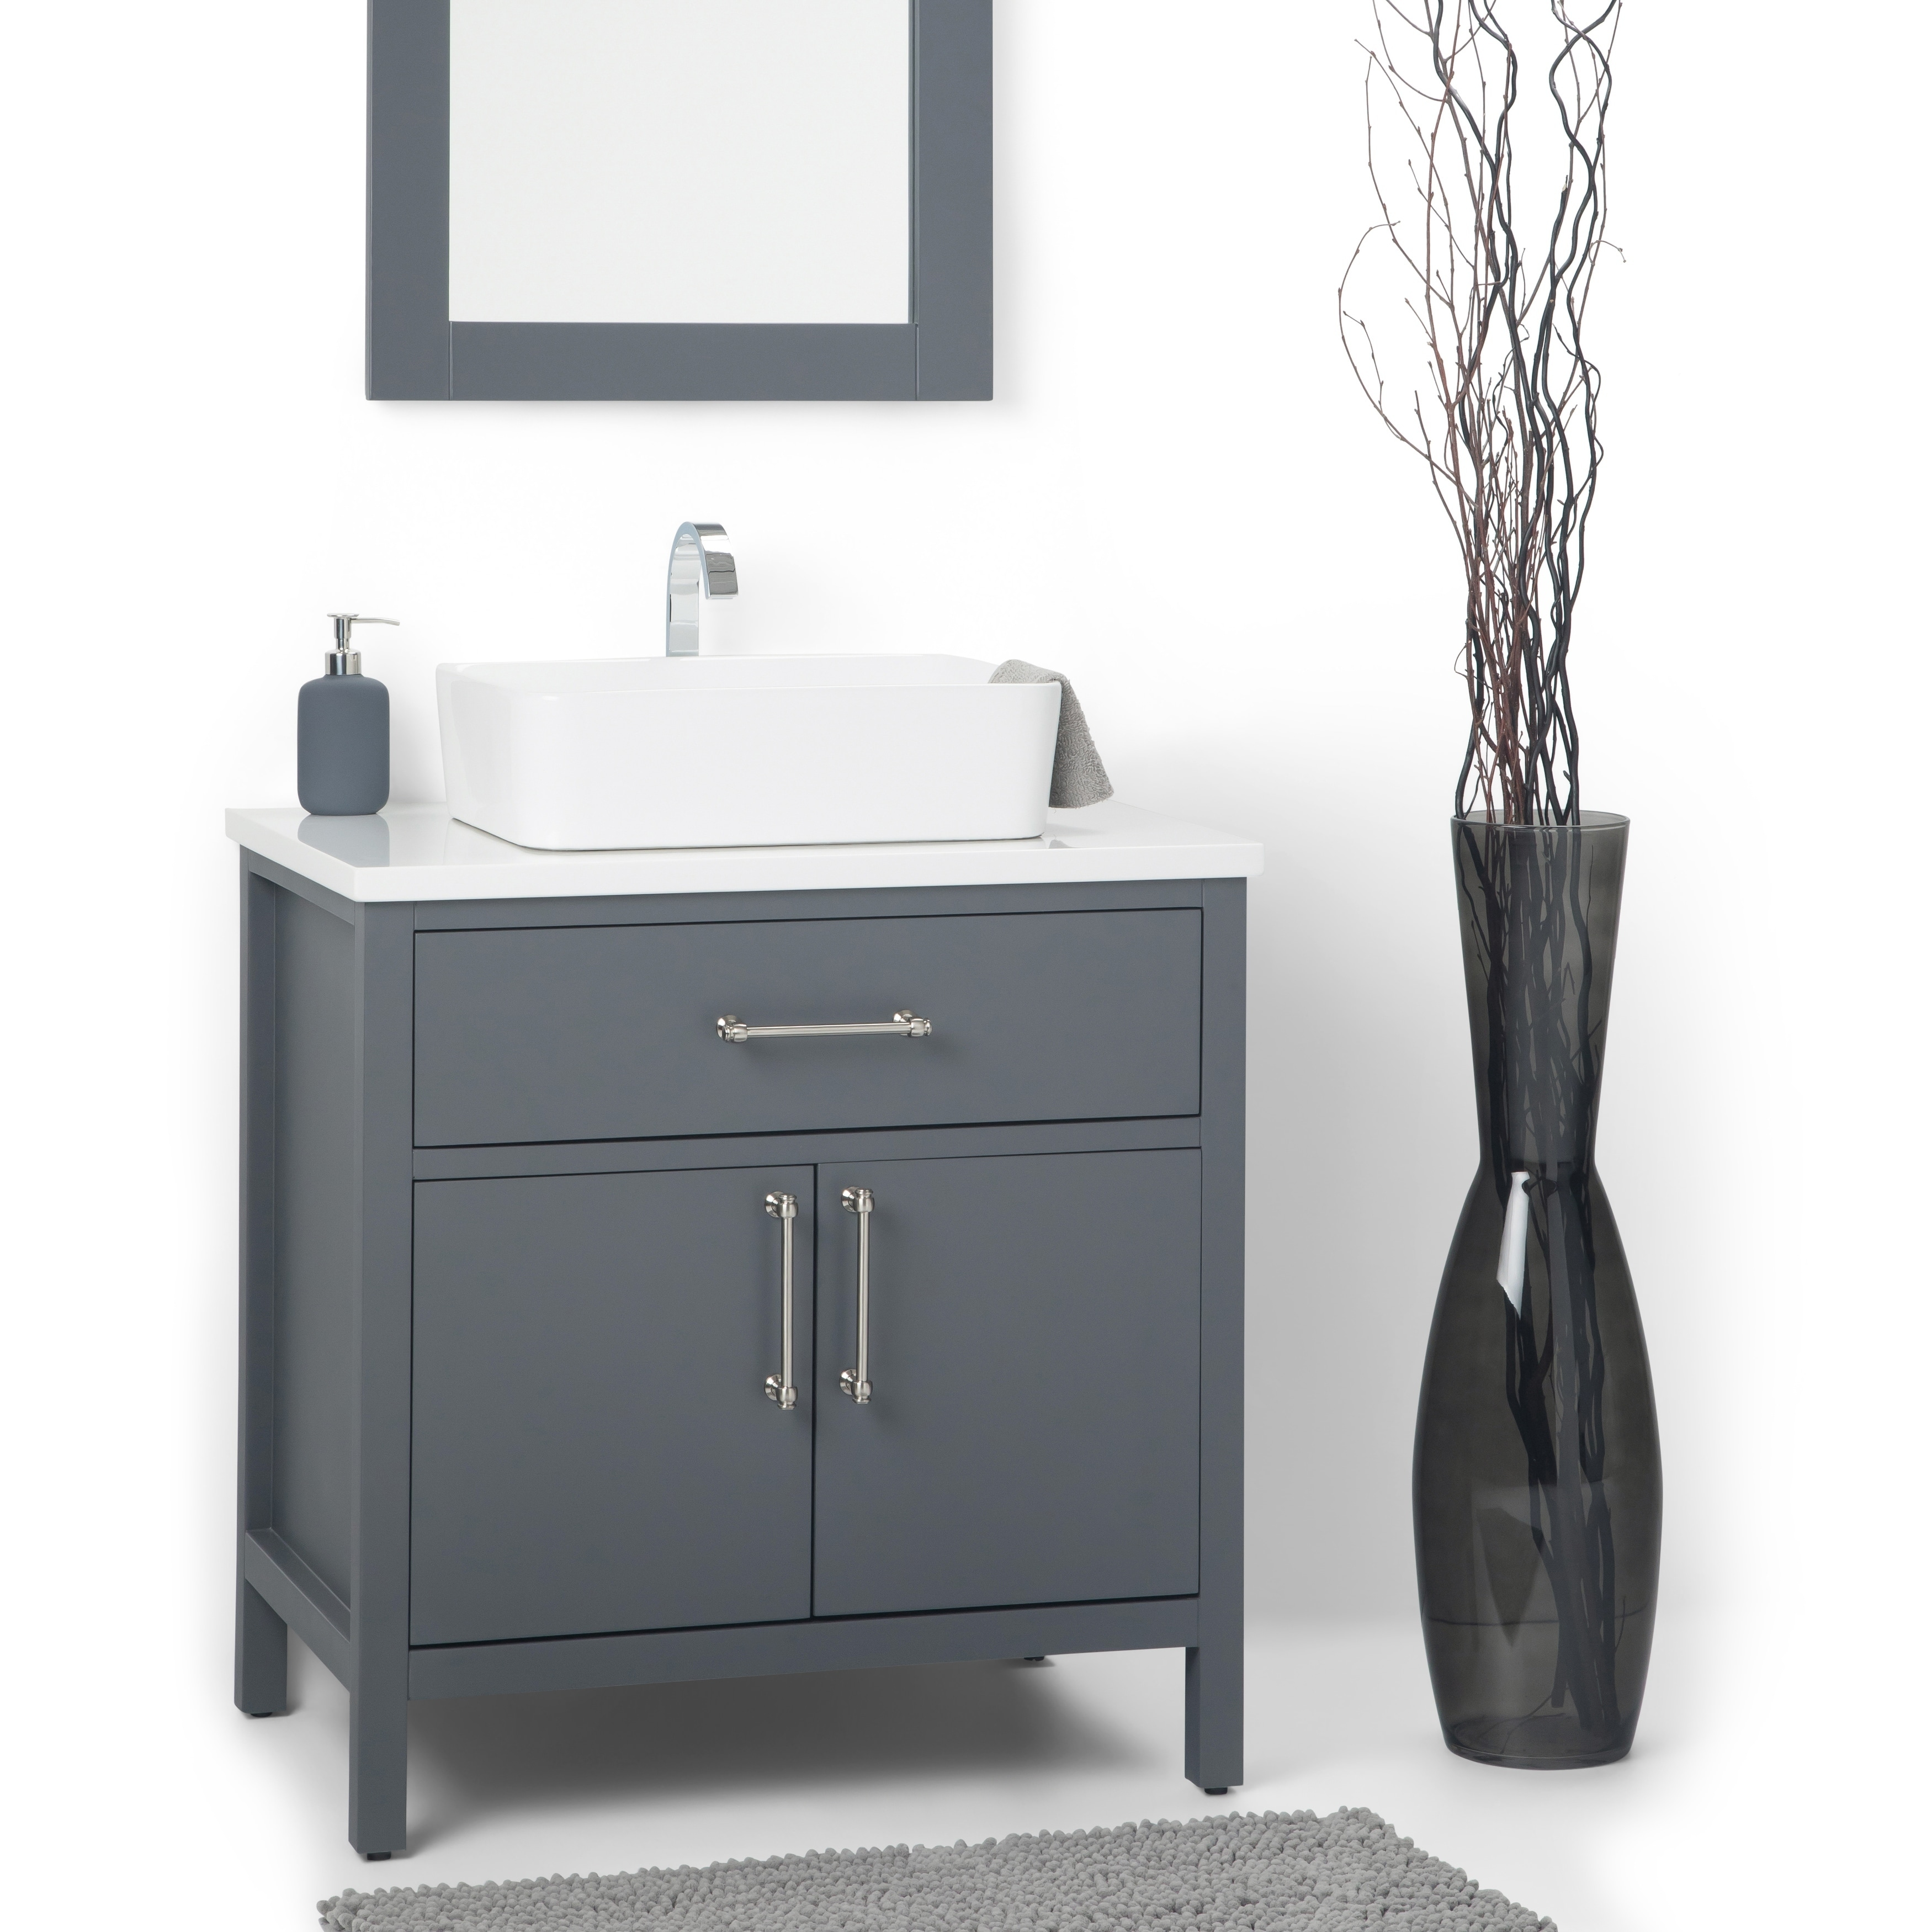 Wyndenhall Farley 30 Inch Contemporary Bath Vanity In Charcoal Grey With White Engineered Marble Extra Thick Top On Sale Overstock 22736260